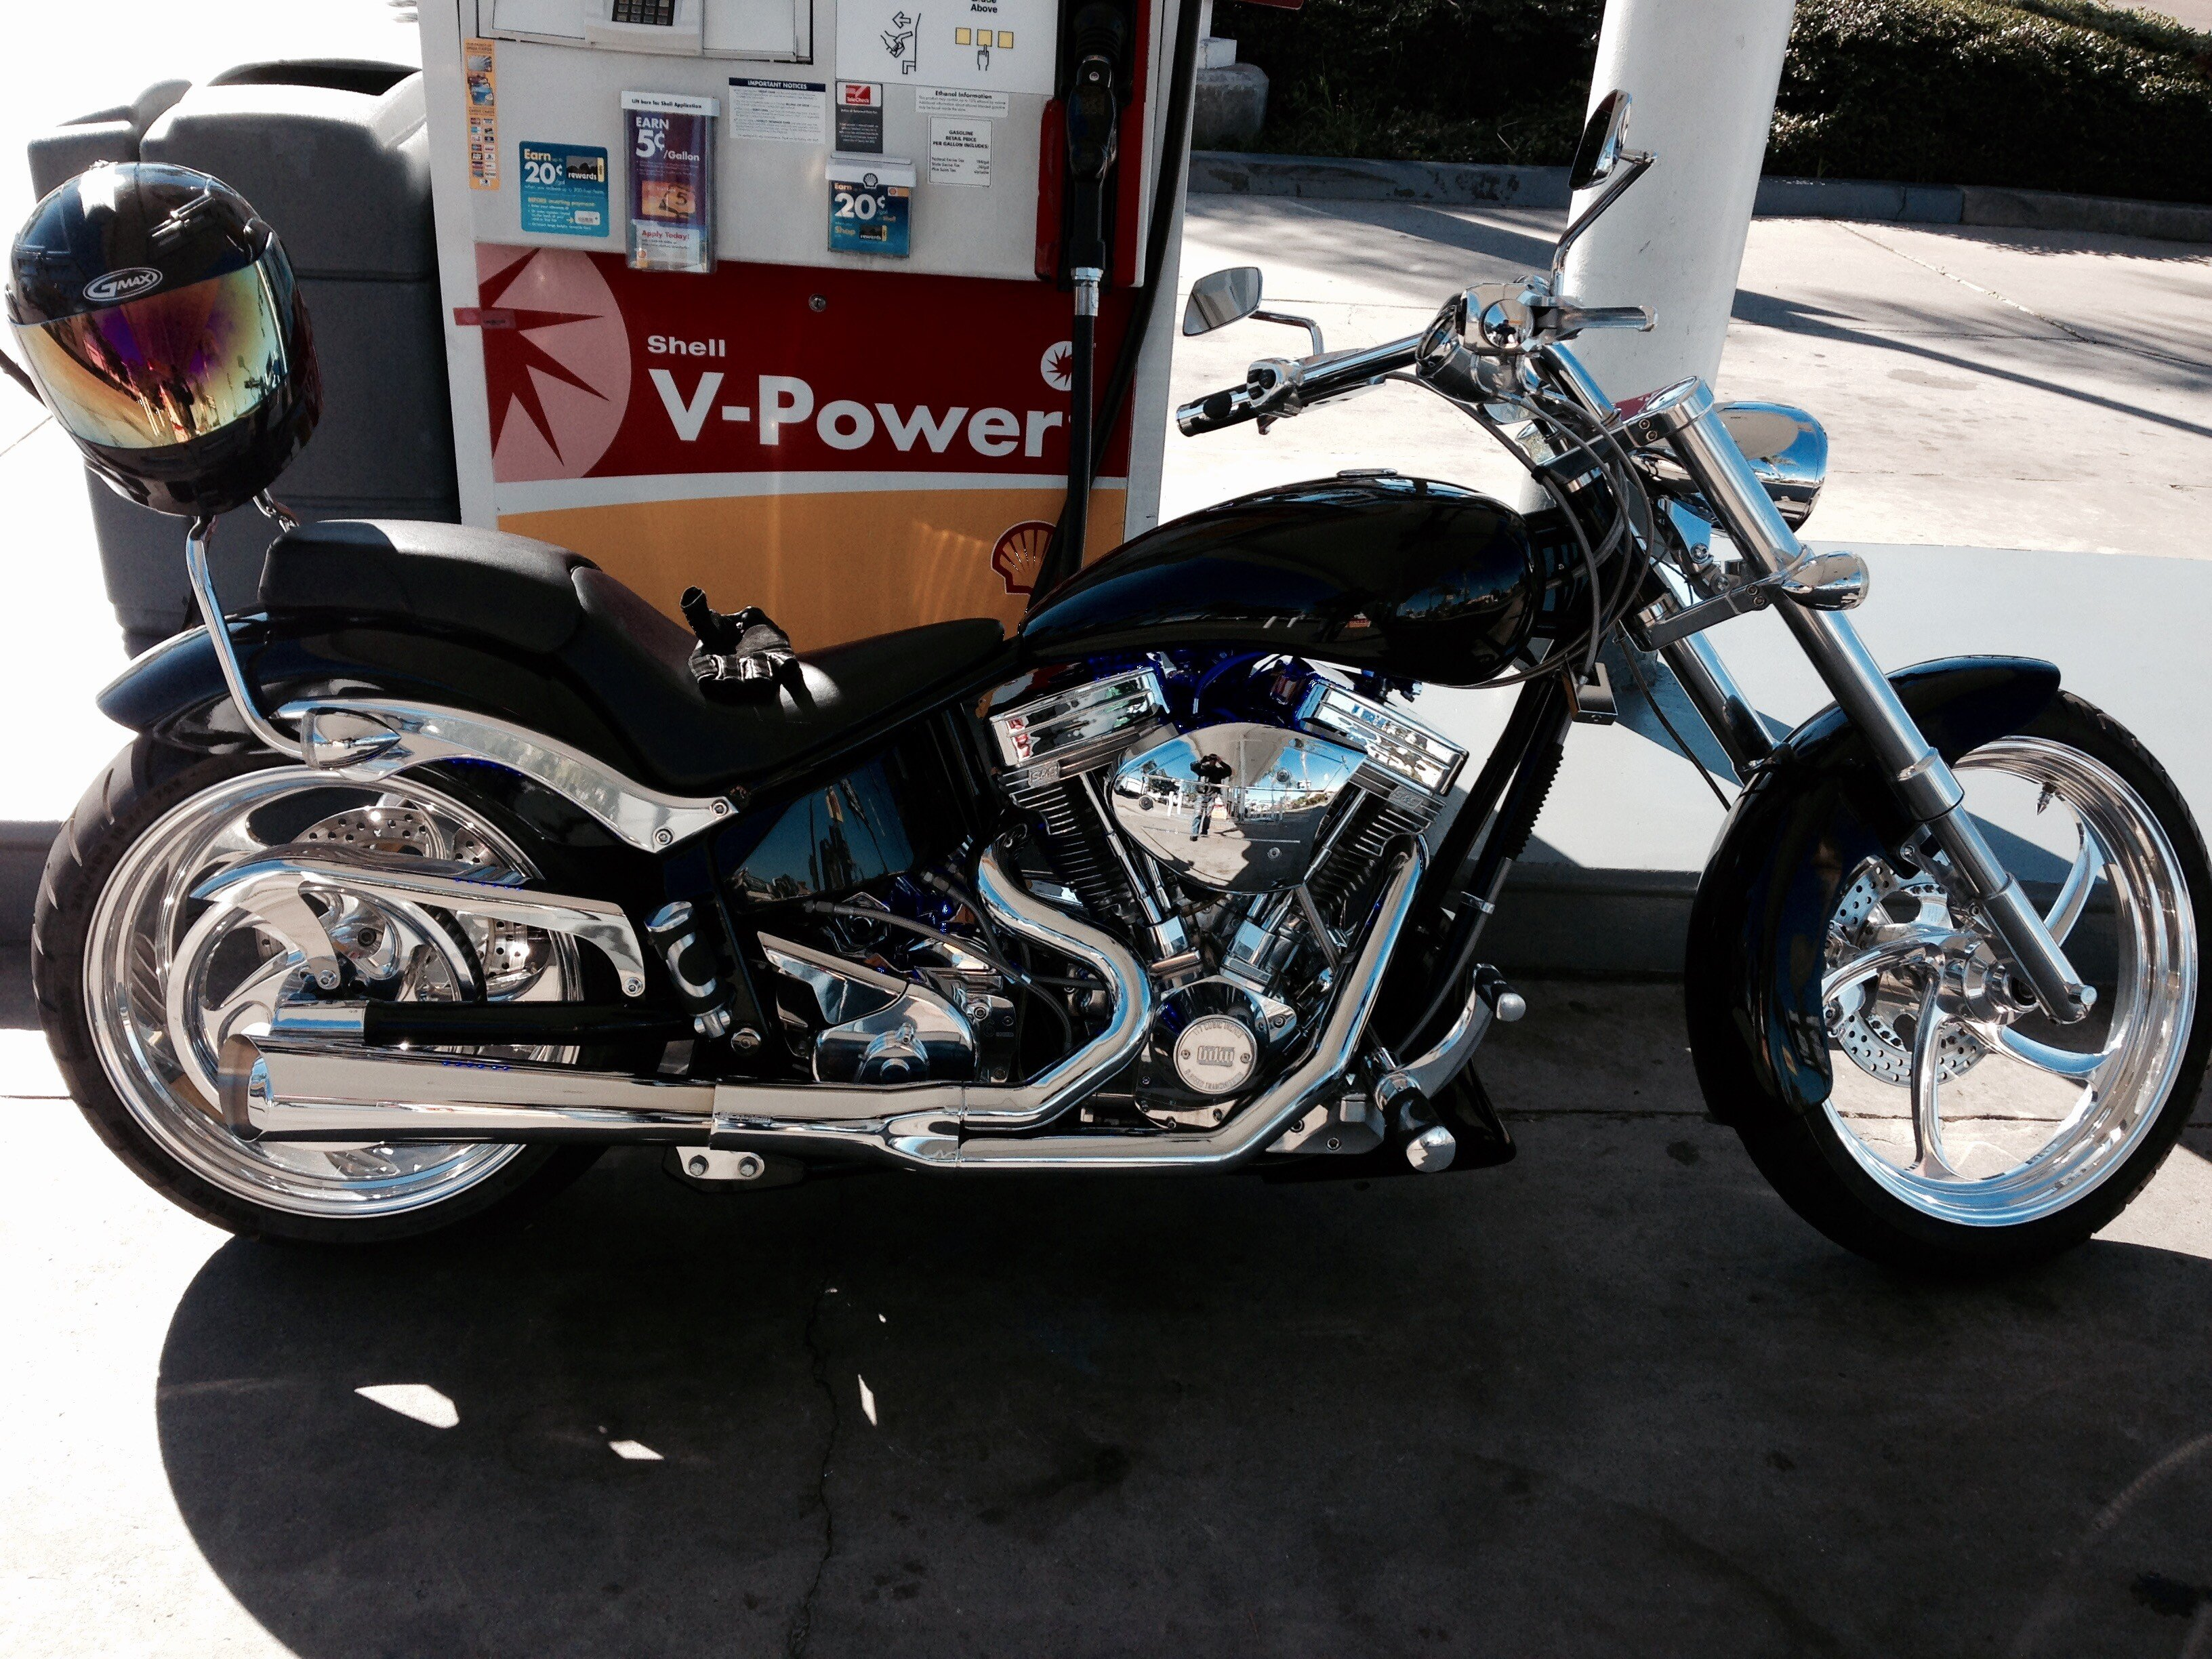 2004 big dog motorcycles pitbull for sale near san diego california rh motorcycles autotrader com Google 2004 Big Dog Motorcycle Bulldog 2004 Big Dog Chopper Recall